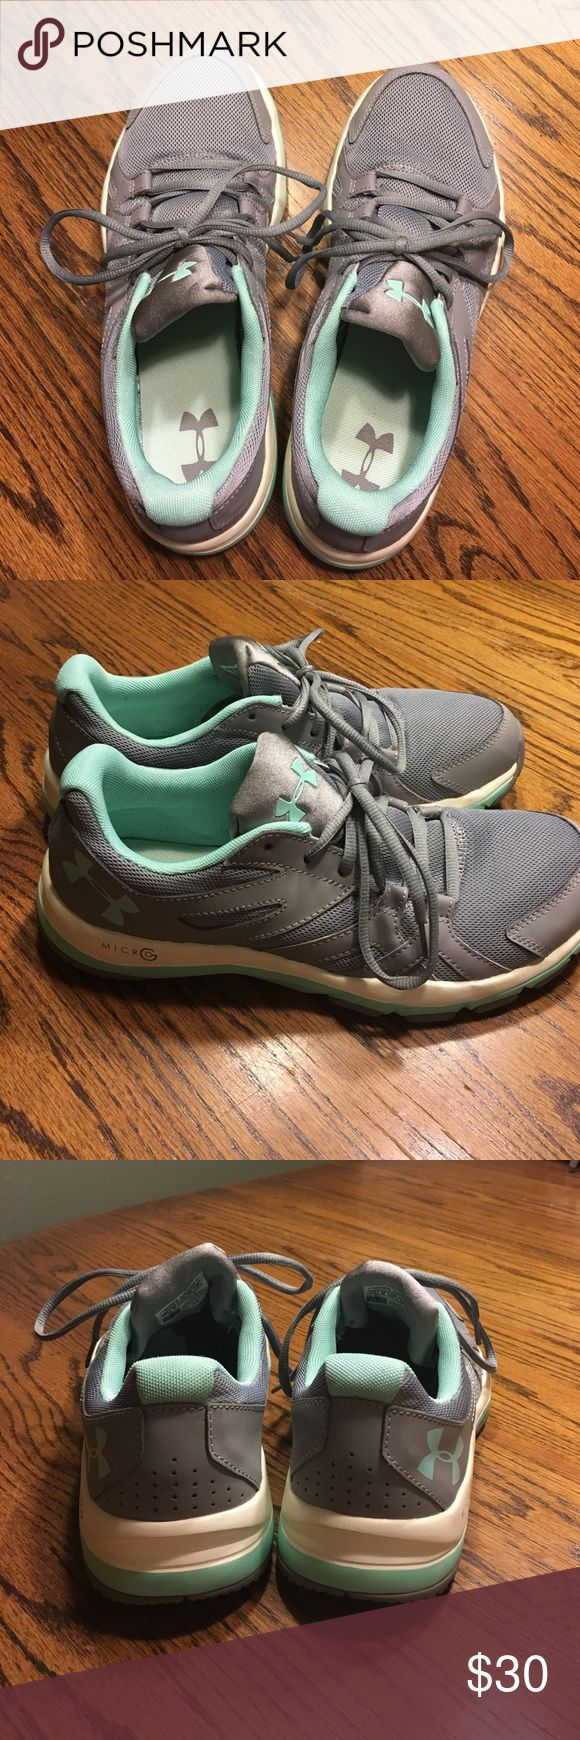 Under Armour tennis shoe Under Armour Grey with aqua trim sneakers. Only been worn around the house to try out.Priced to sale!! Under Armour Shoes Athletic Shoes